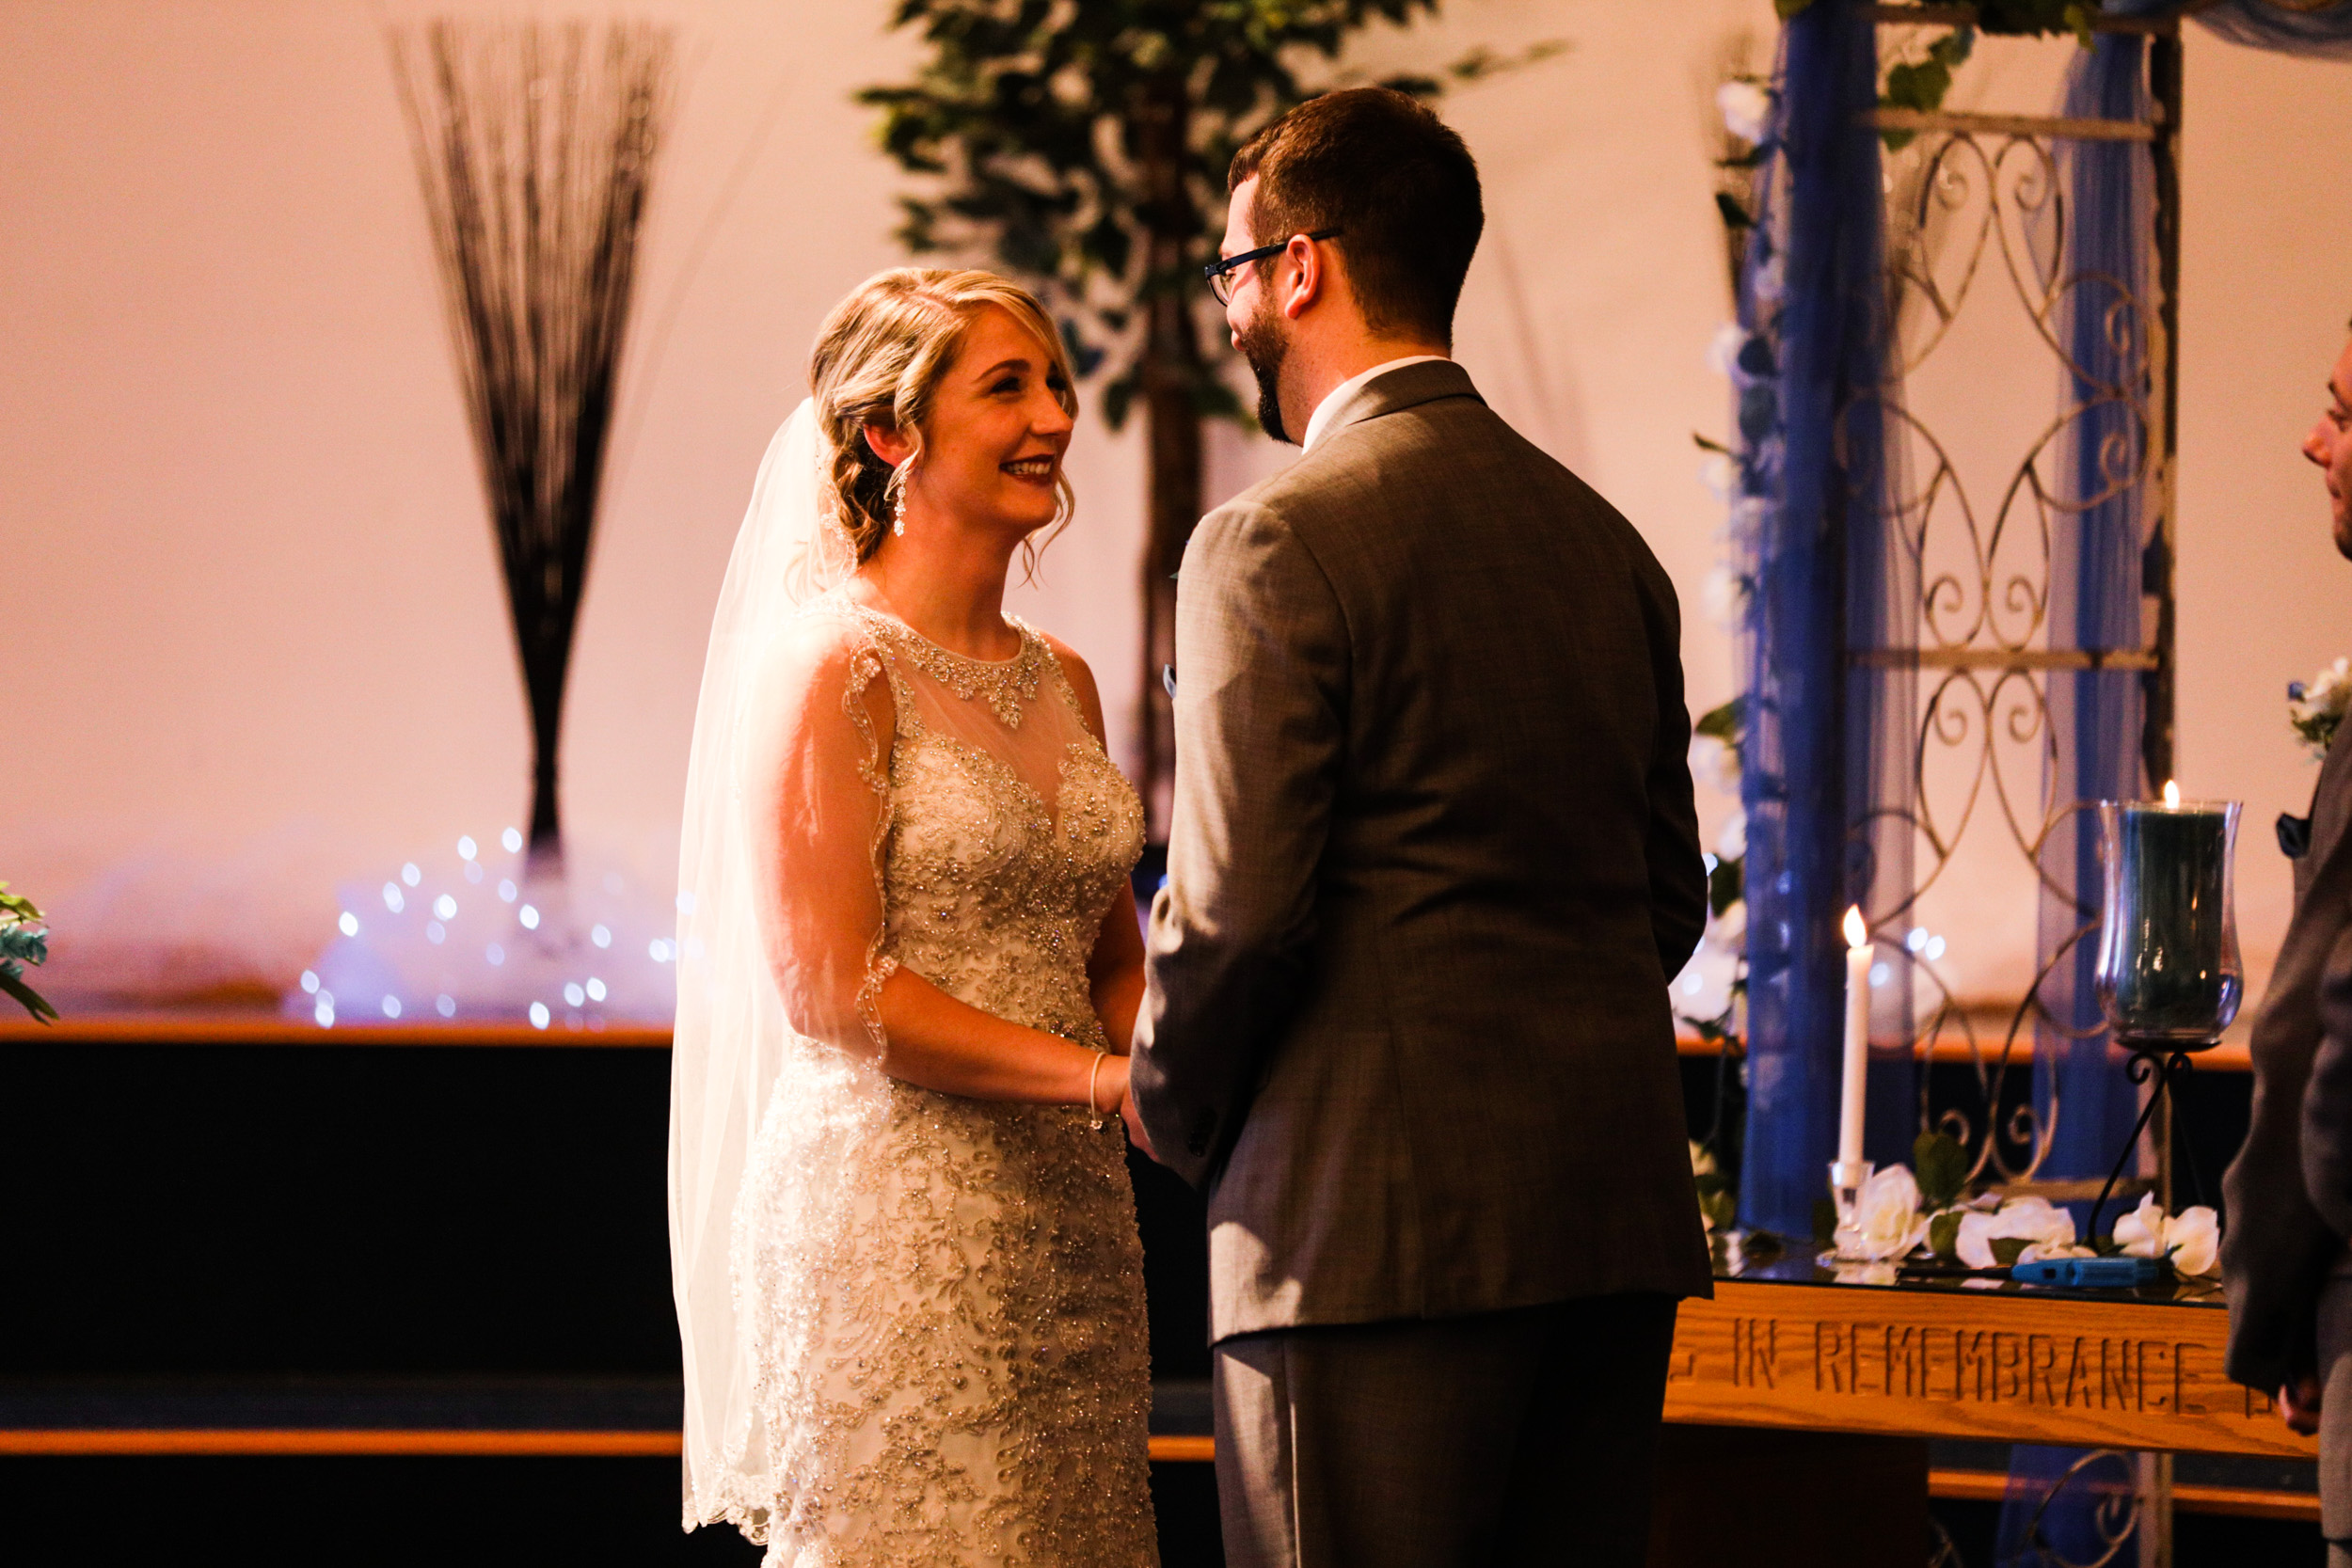 Winstanley Baptist Church Wedding and Four Points by Sheraton Reception Photos by St Louis Wedding Photographers and Videographers Oldani Photography 127.jpg